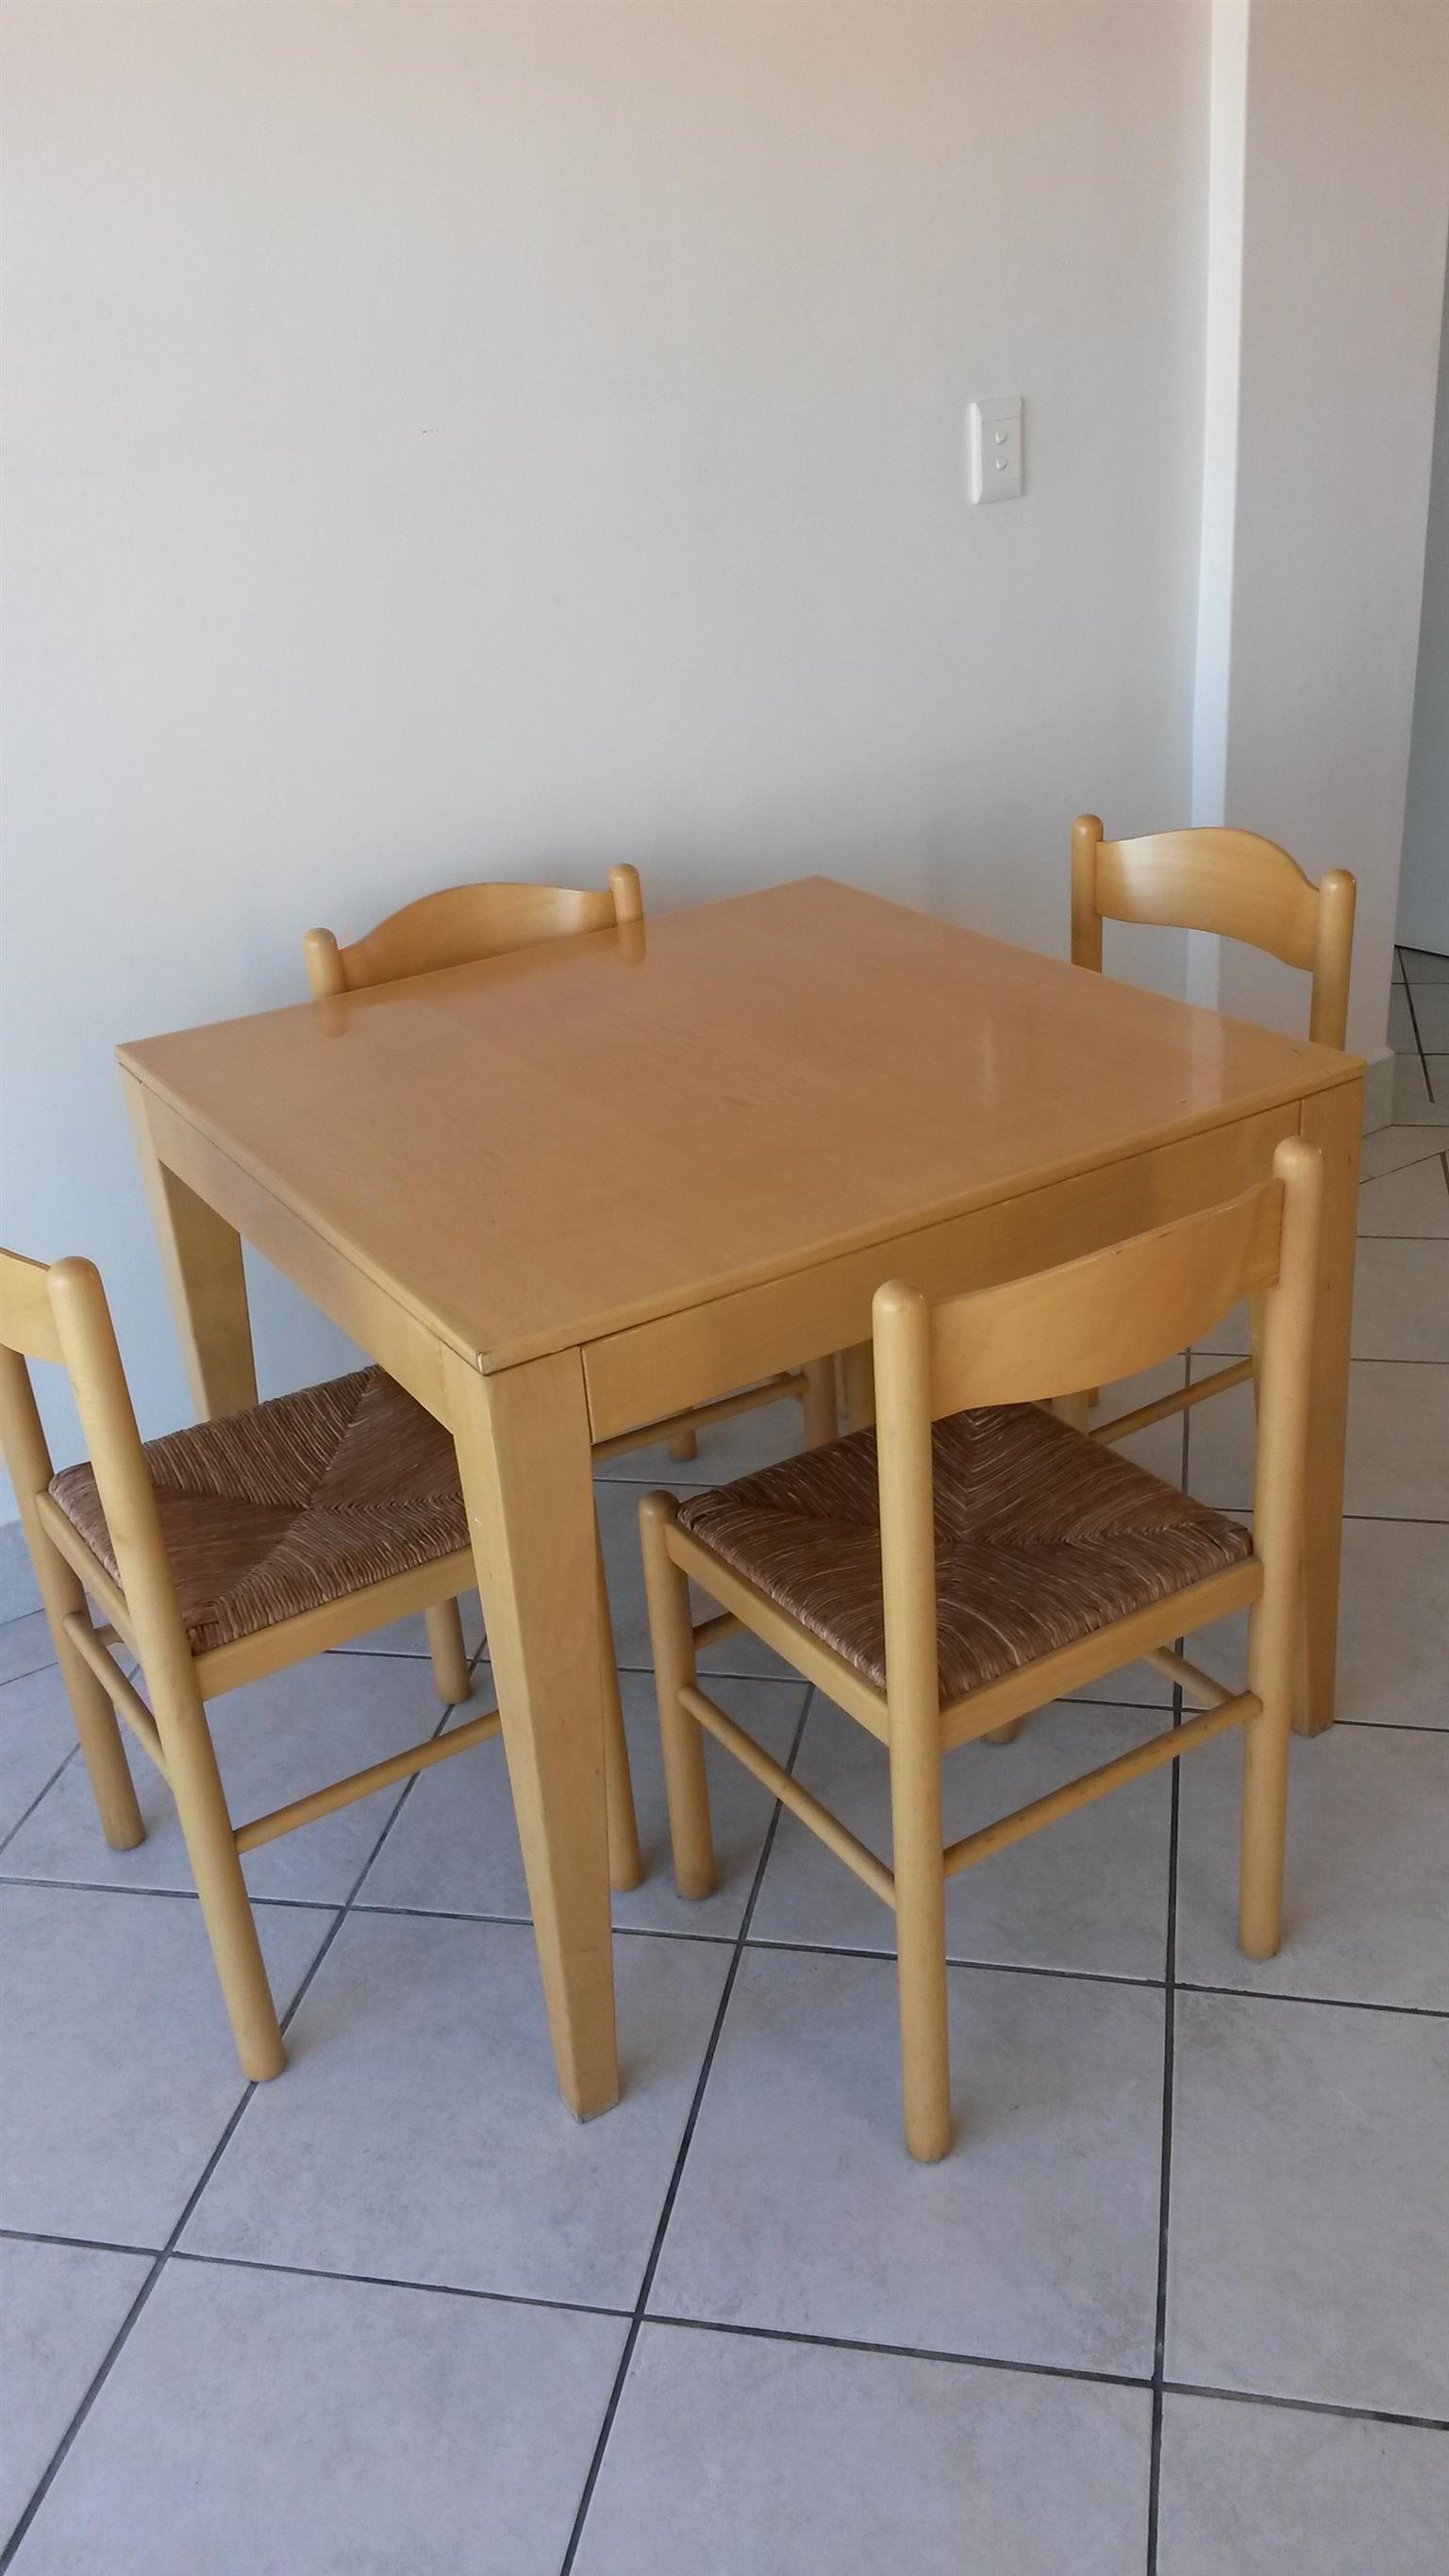 Charmant Beech Wood Dining Table And Chairs